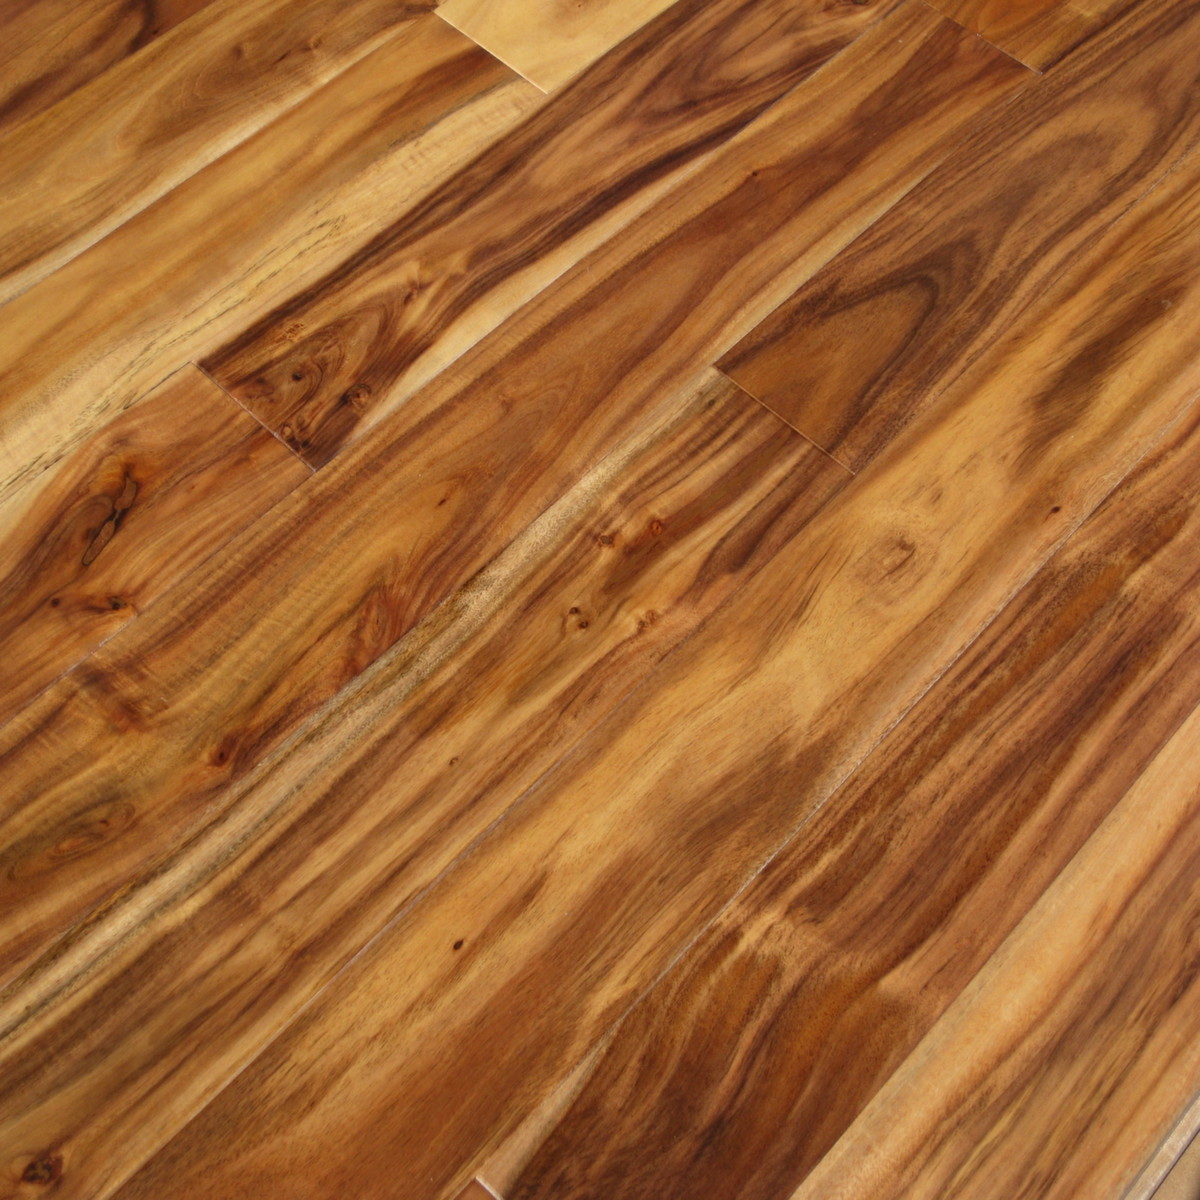 Acacia Natural Hand Scraped Hardwood Flooring Acacia